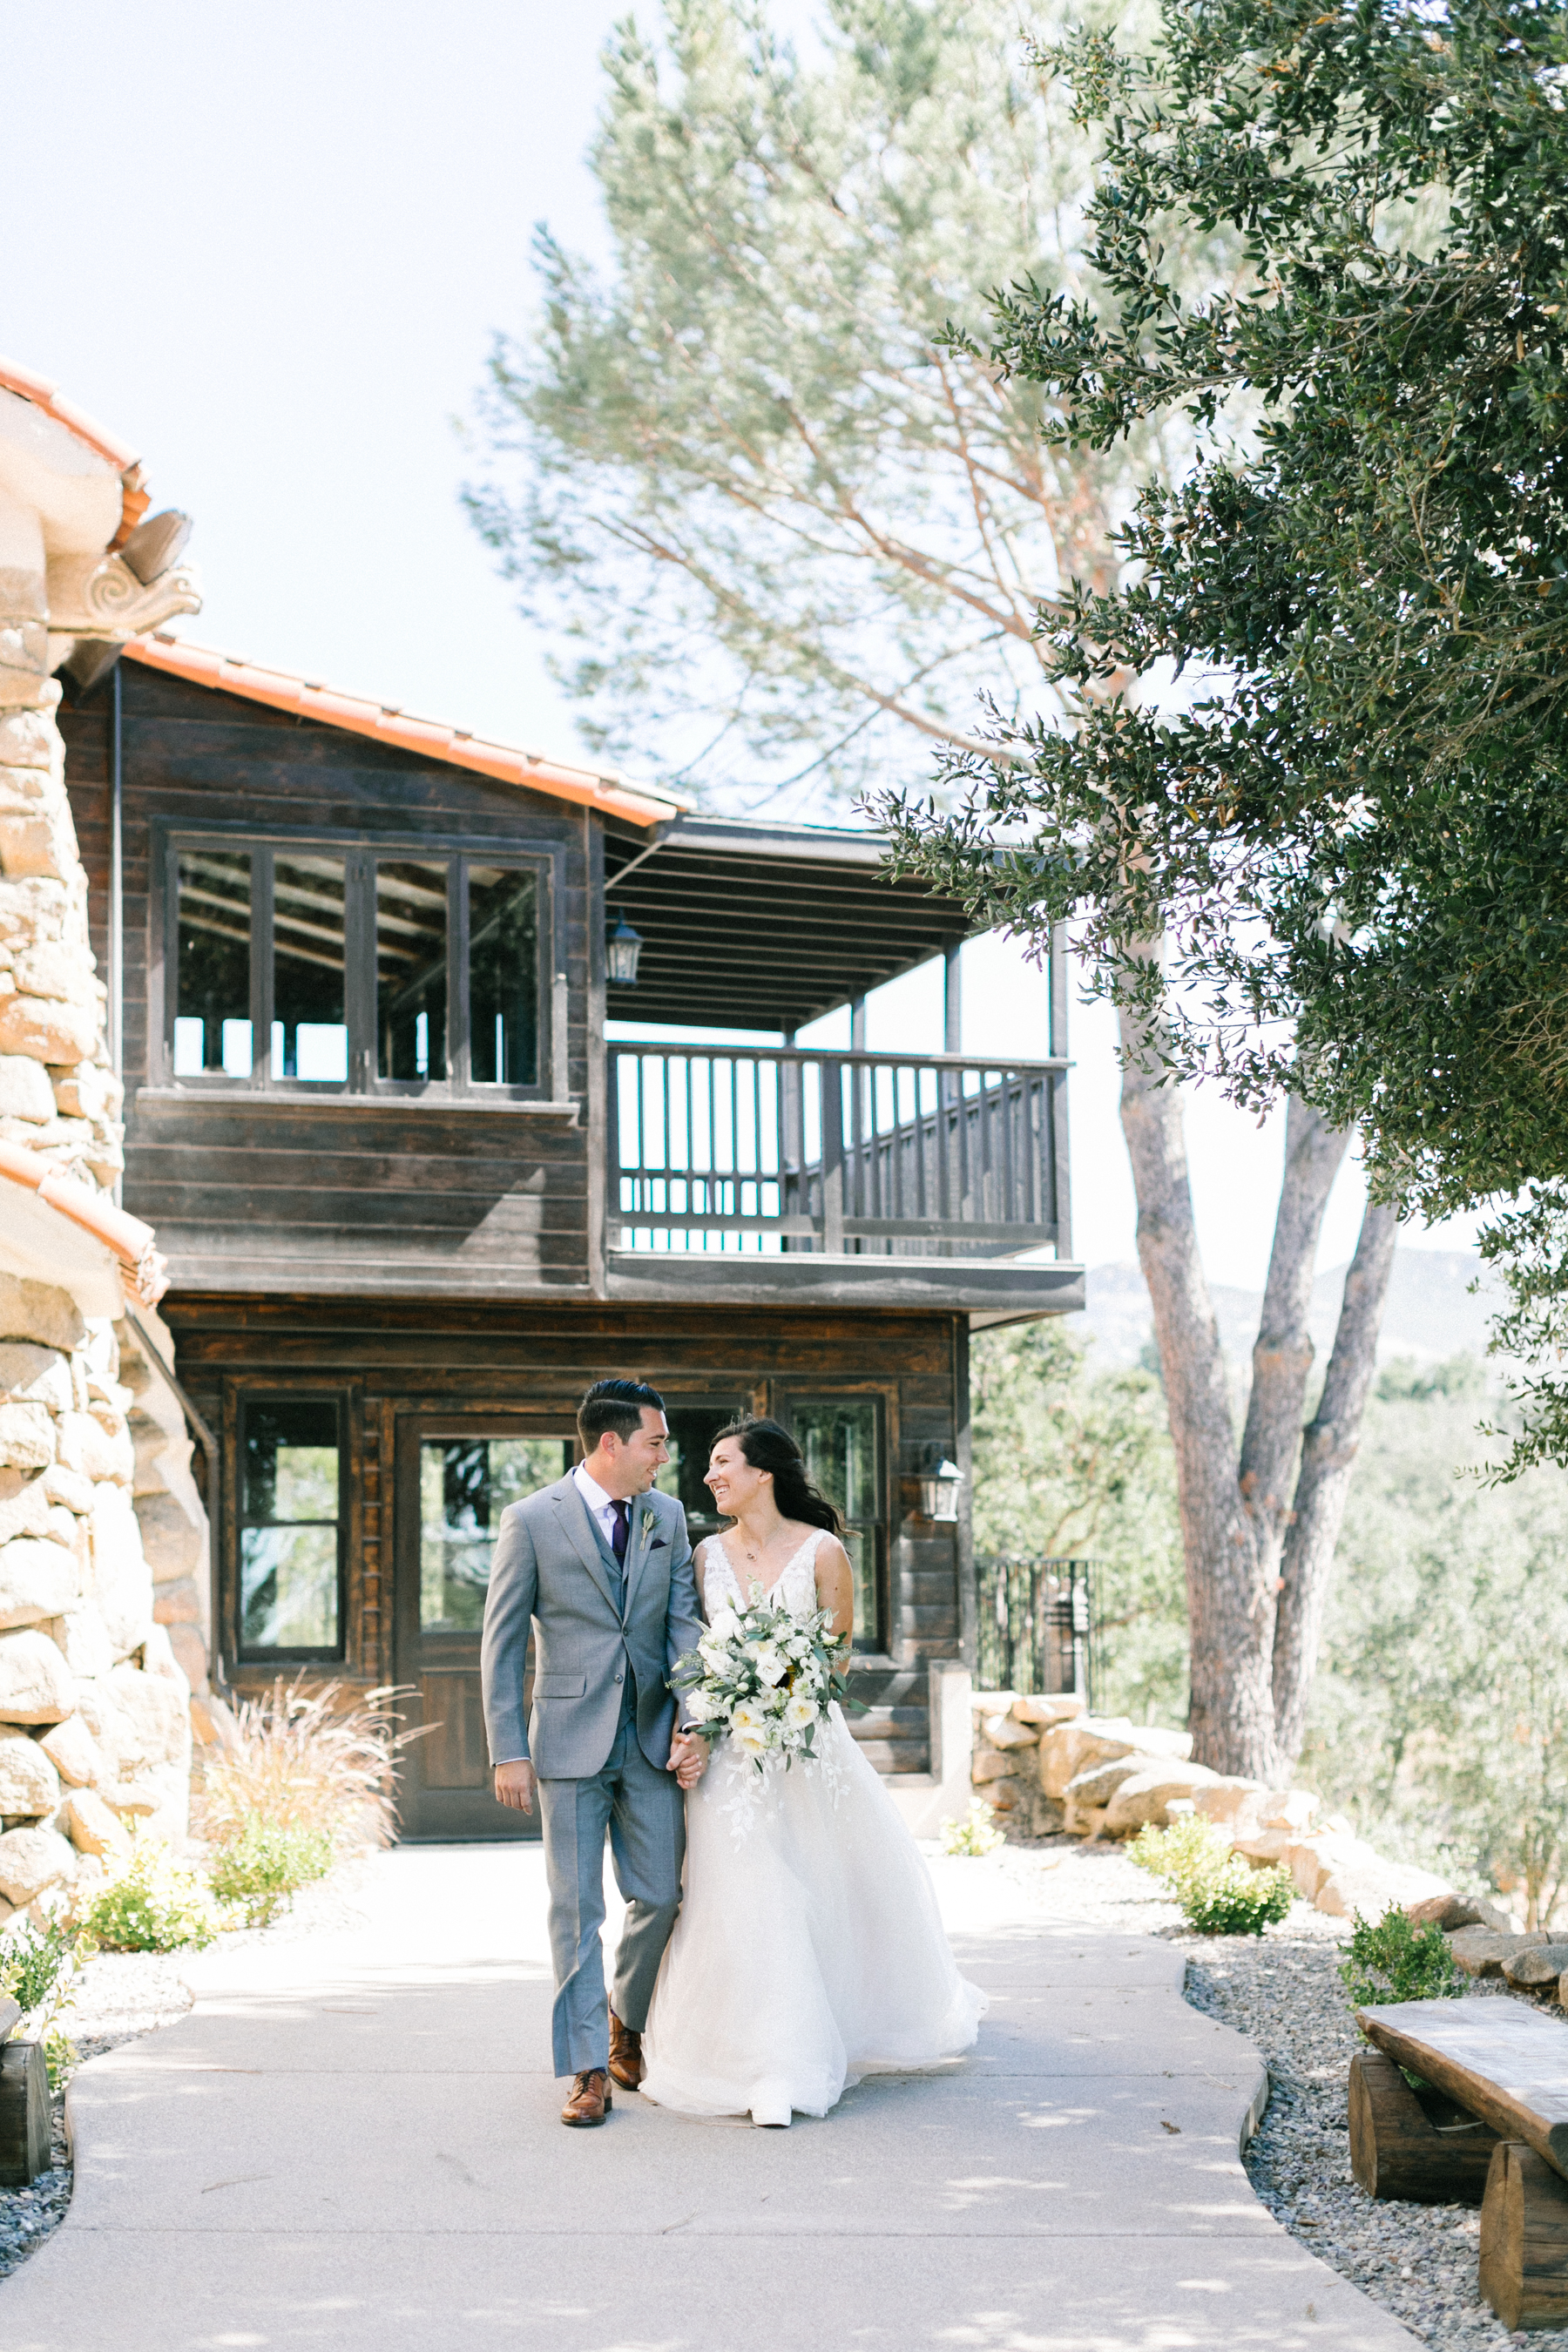 Jordan and Alex's Mt. Woodson Ramona Wedding Great Woodland Photography 8-31-19-12.jpg